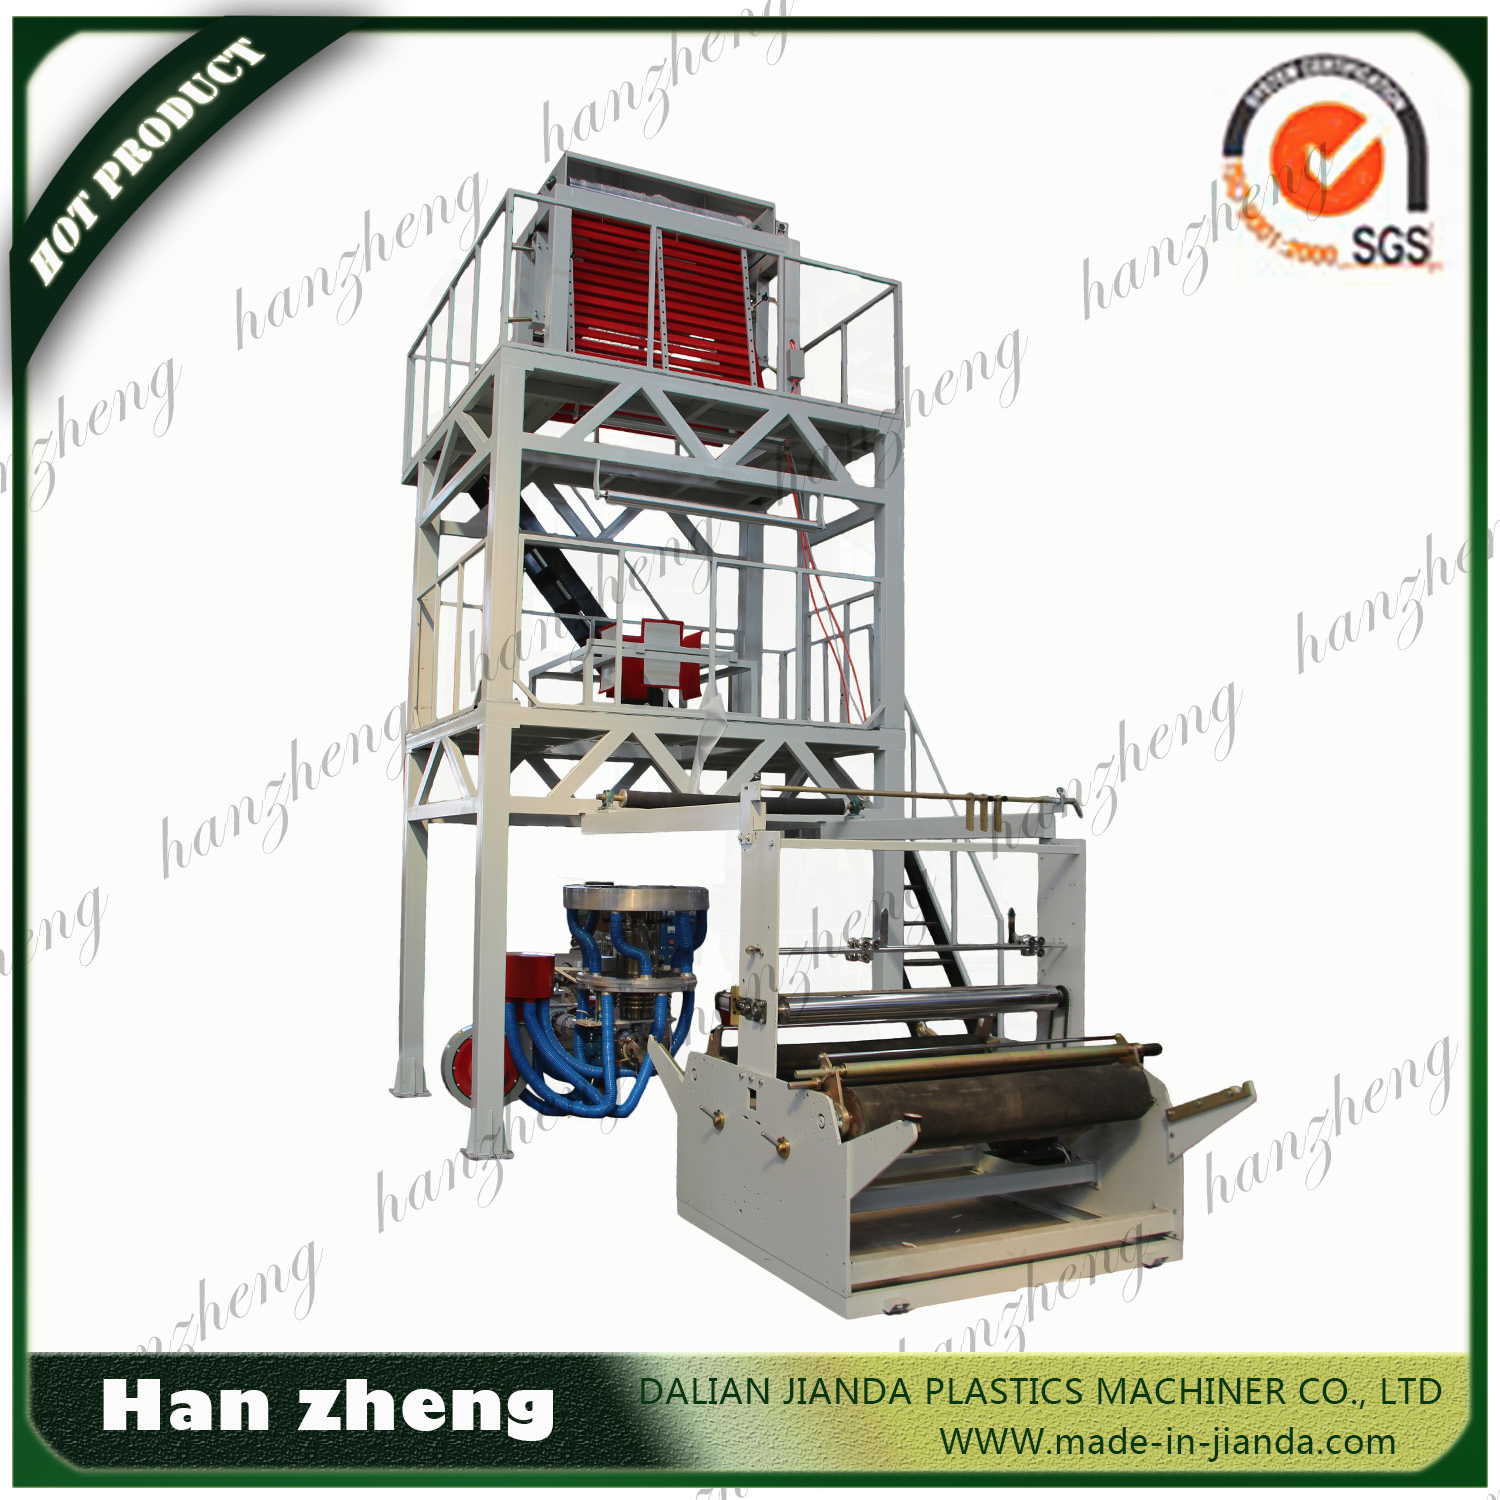 Sjm 55-1600 Single Screw PE Film Blowing Machine with Double Winder